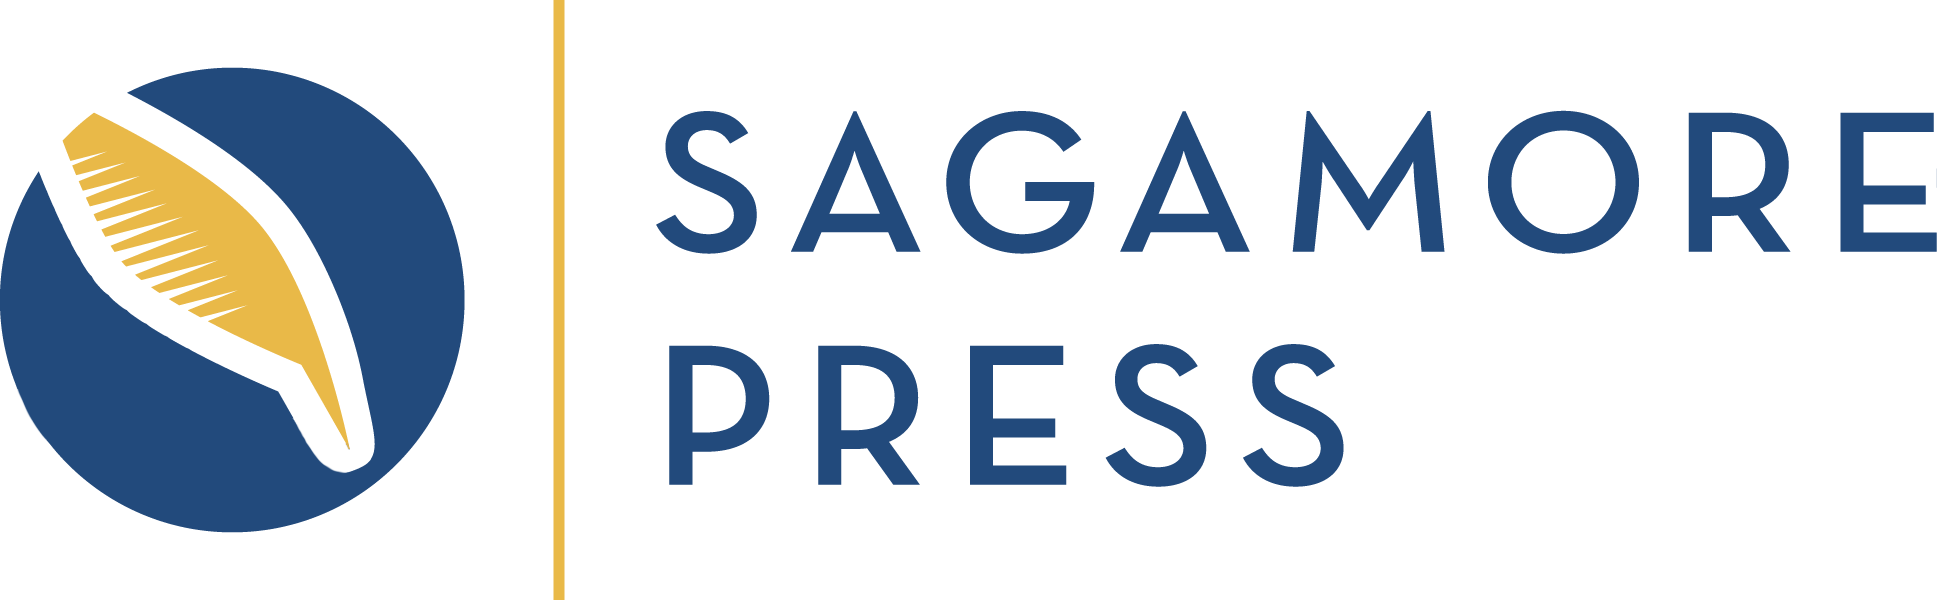 Sagamore-Press-Logo-5